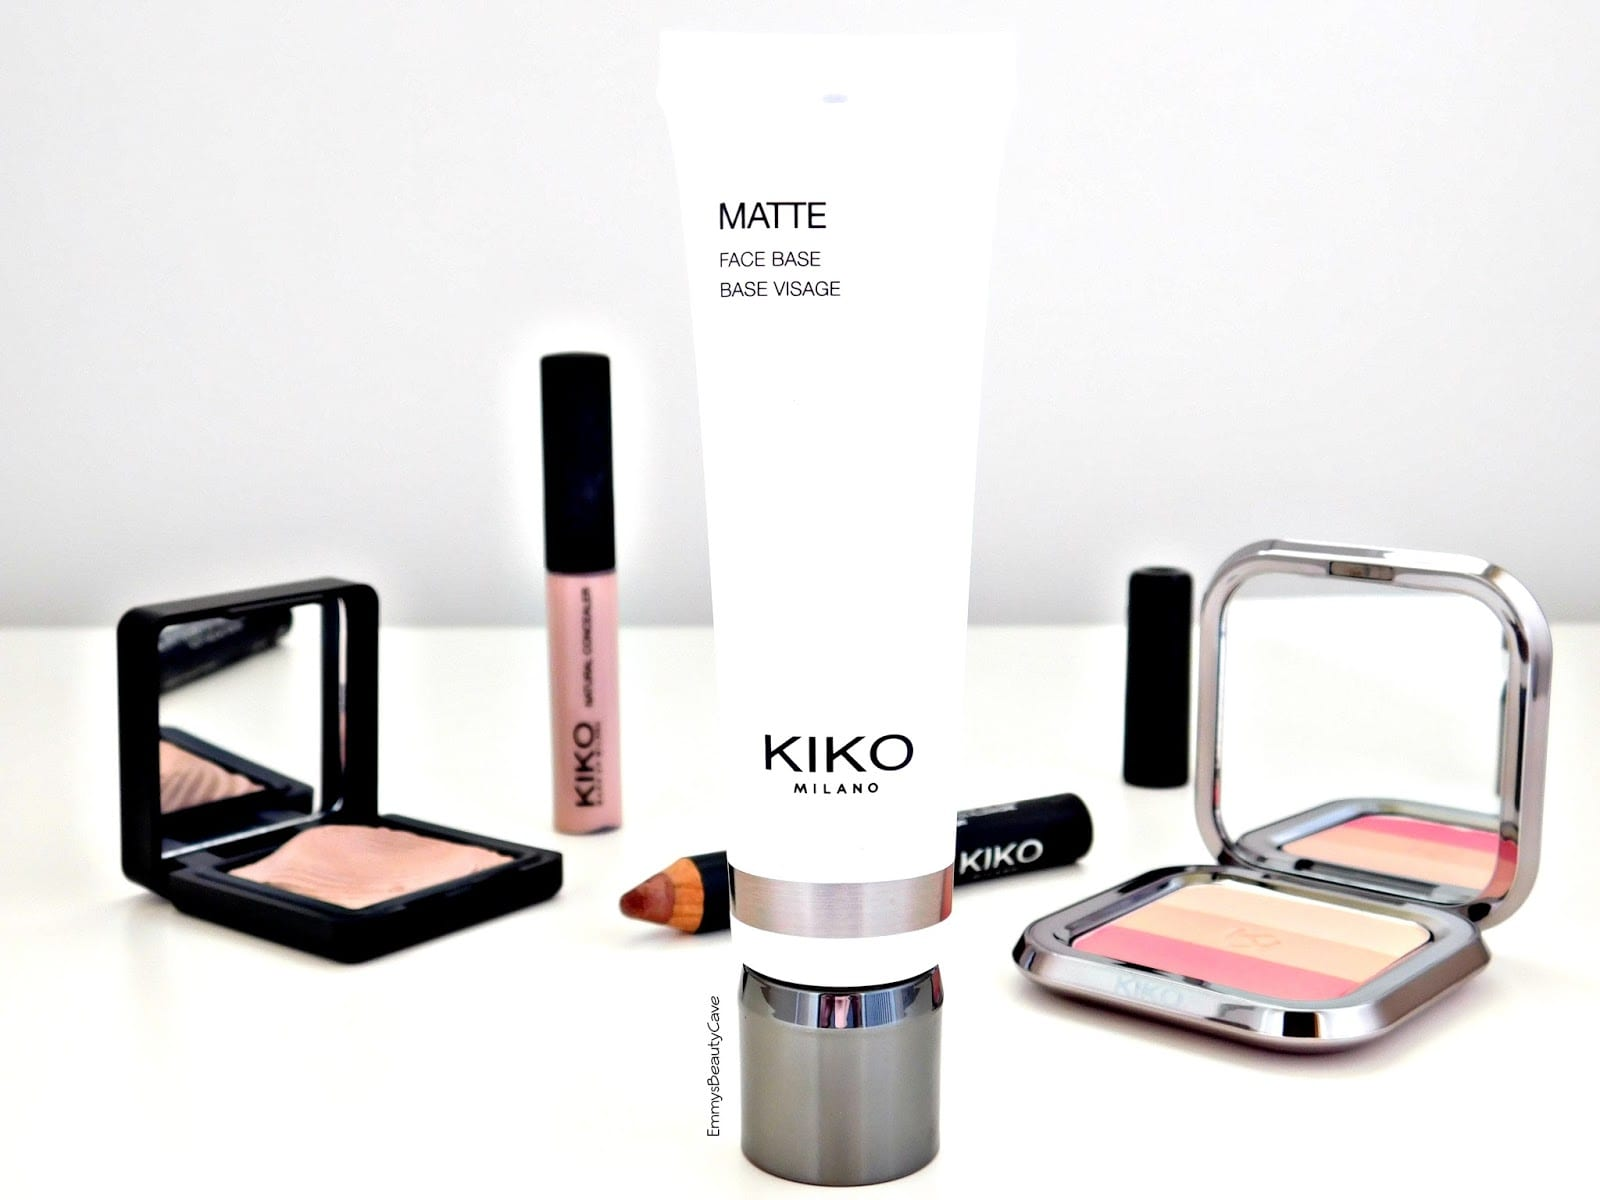 kiko-matte-face-base